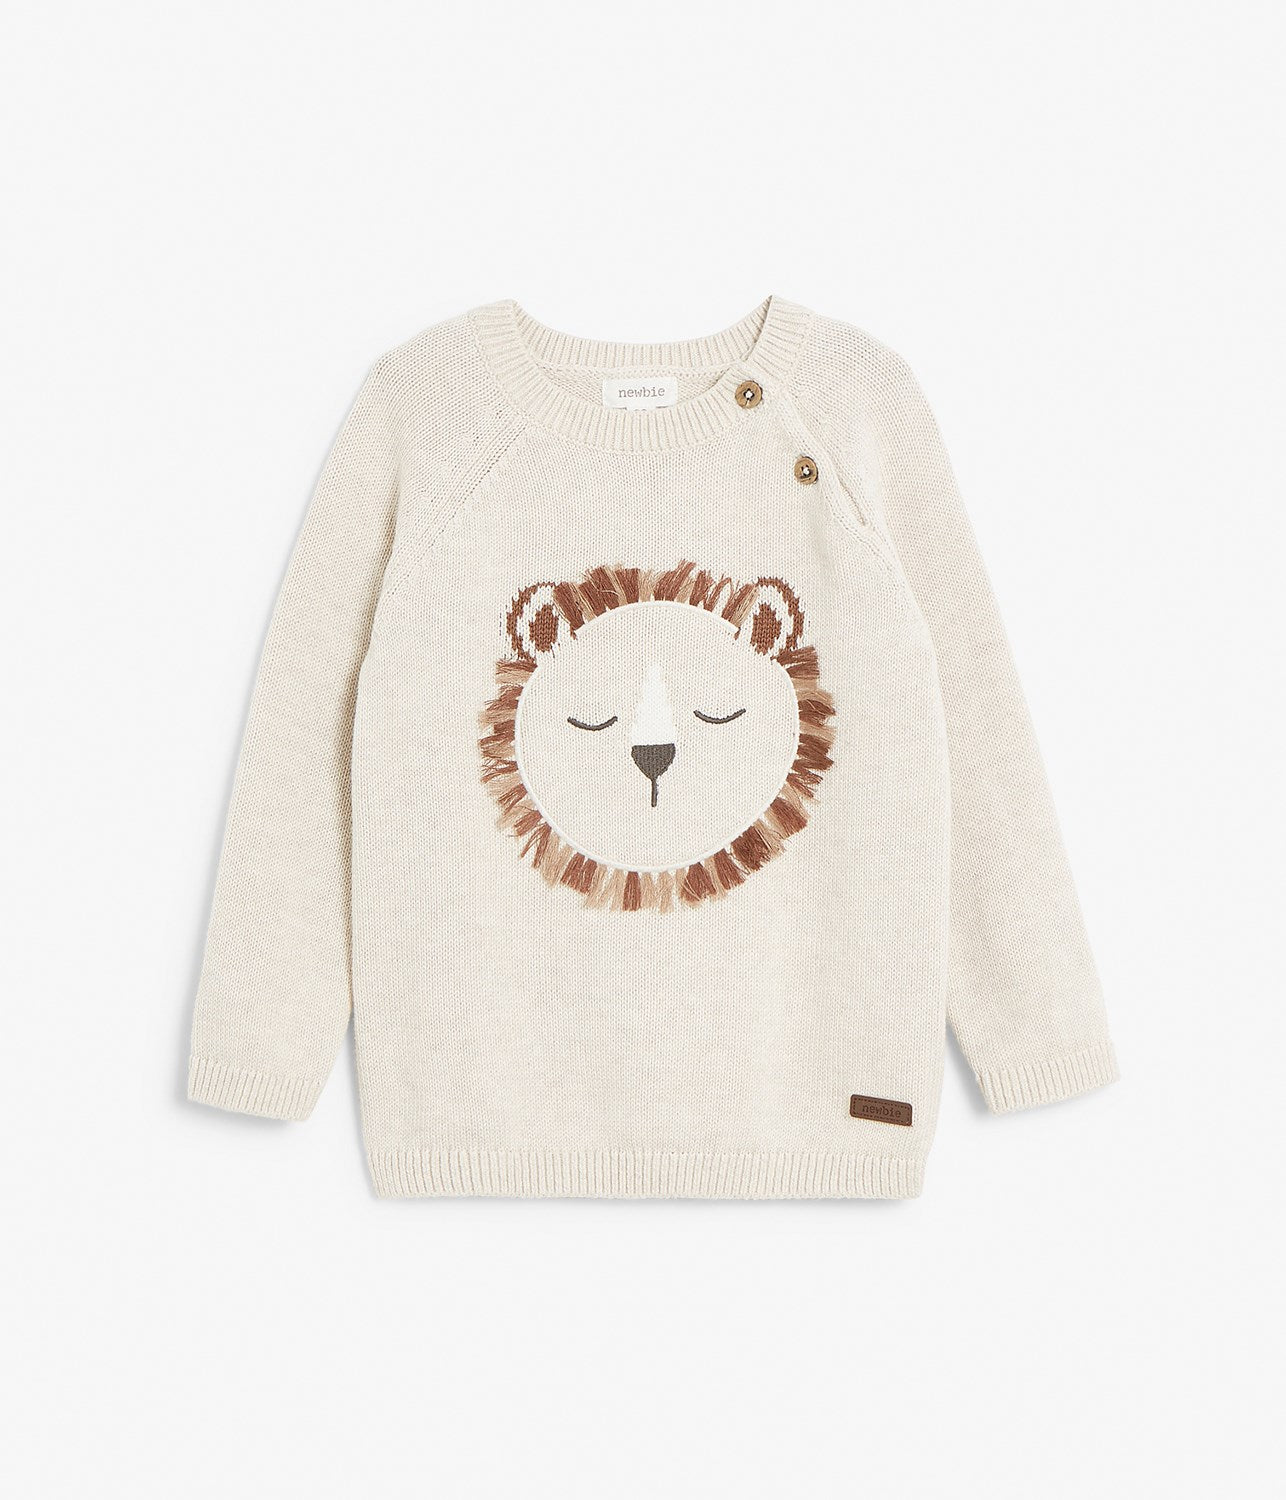 Kids beige knitted sweater